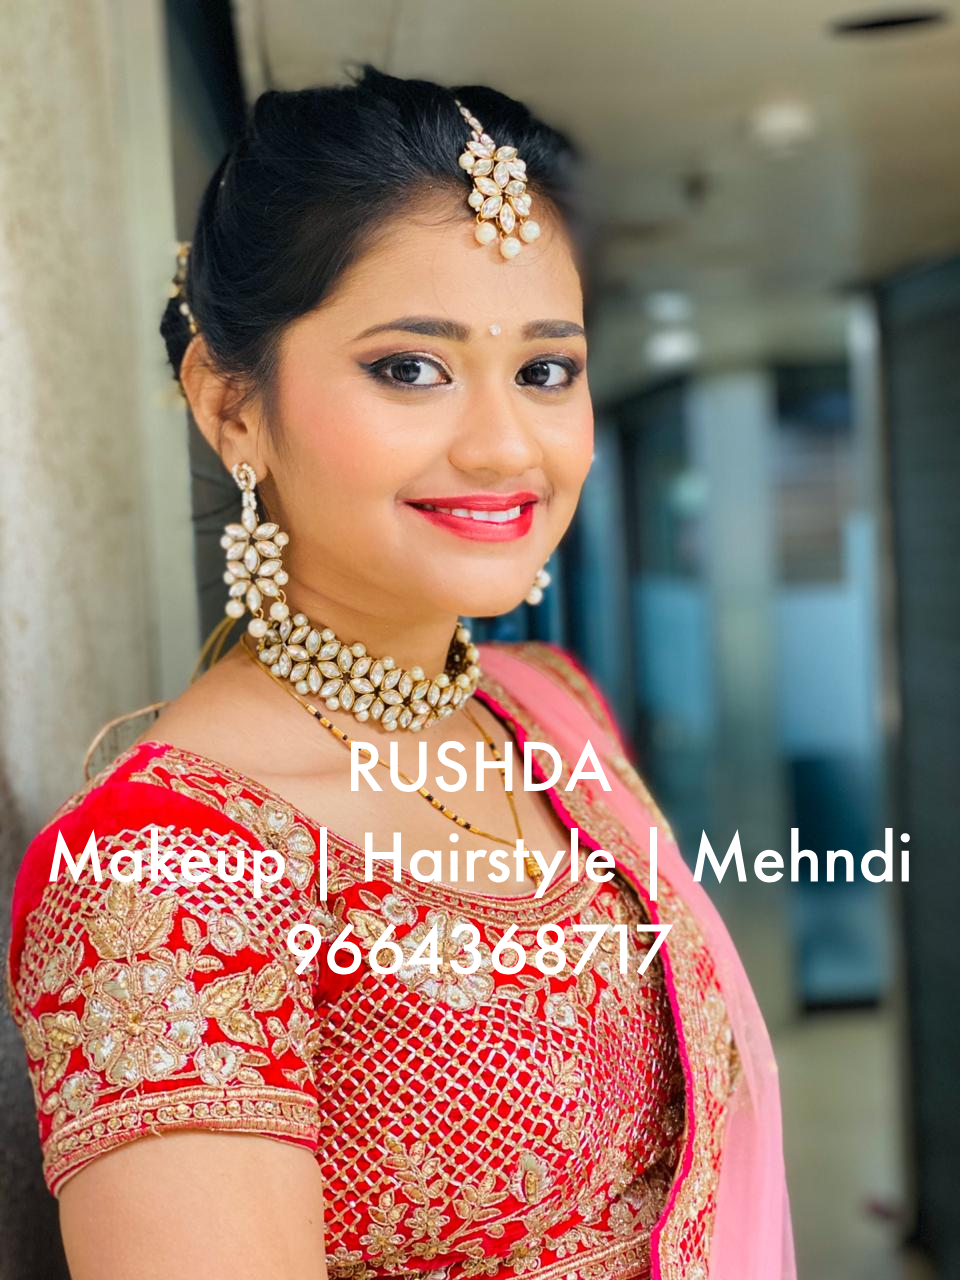 INDIAN GURAJATI BRIDE AND BRIDAL MAKEUP